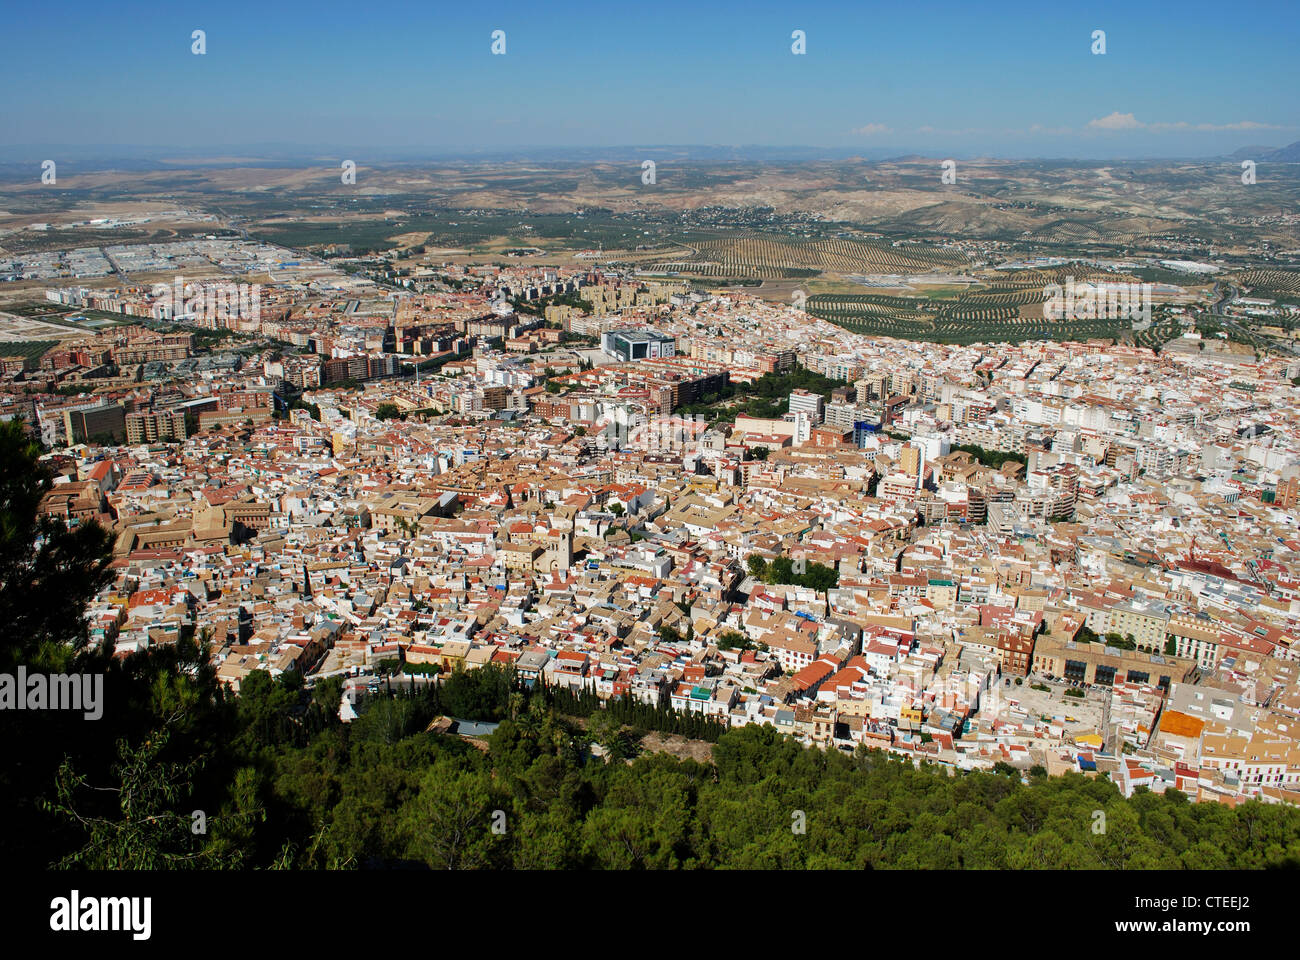 View over the city rooftops, Jaen, Jaen Province, Andalucia, Spain, Western Europe. - Stock Image